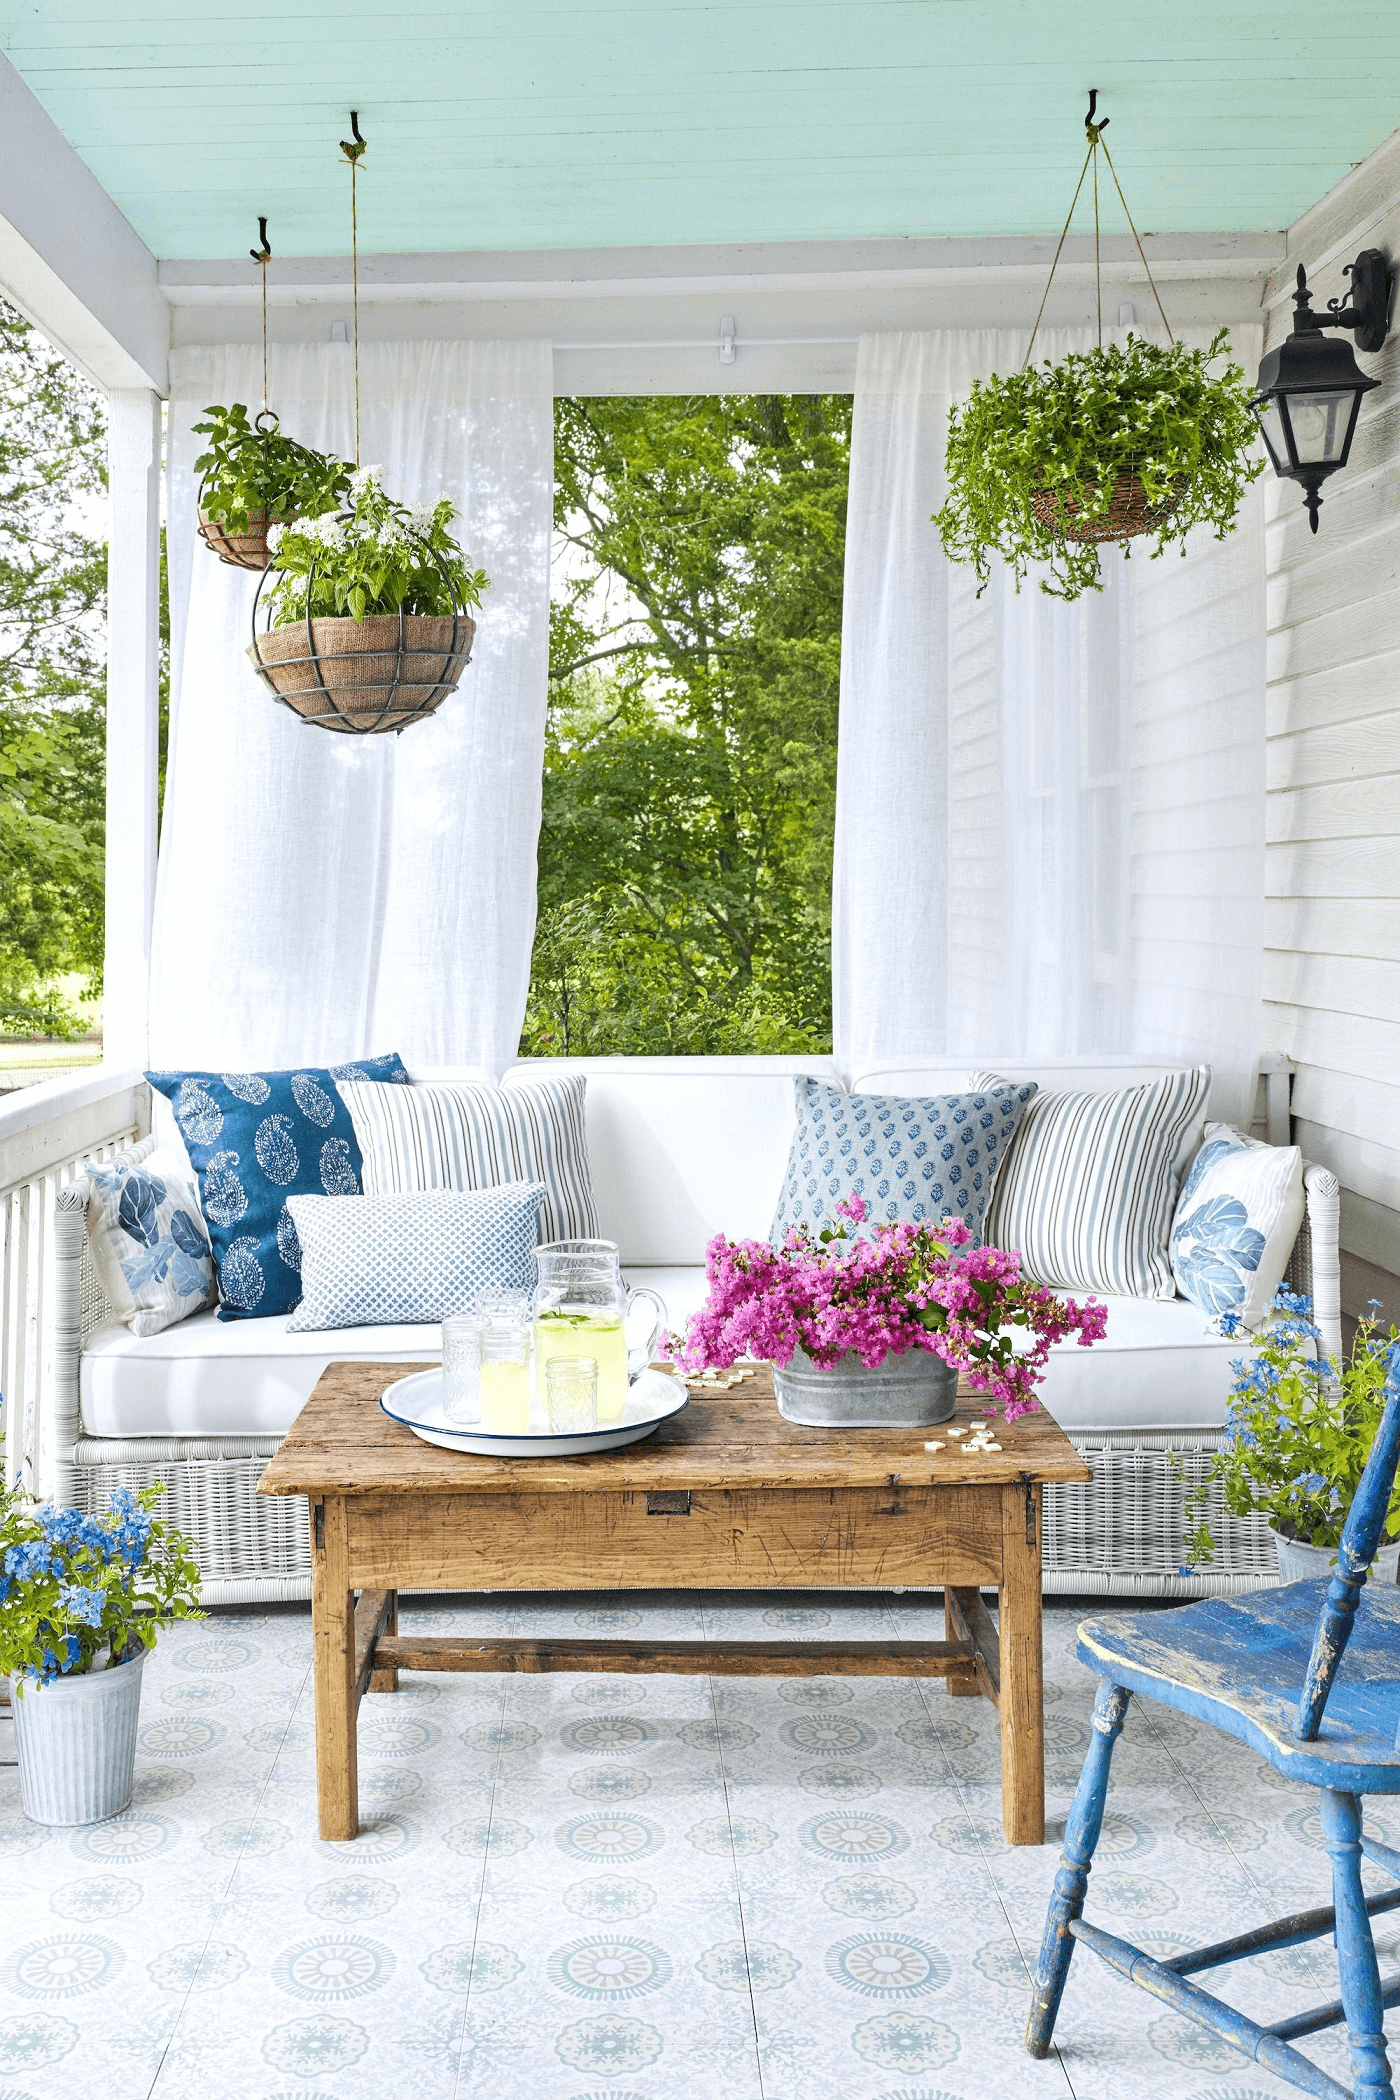 Rustic small front porch decorating ideas for summer with flower pot and colorful pillow Bright Patterned Cushions - View Small Home Front Porch Design  Pics